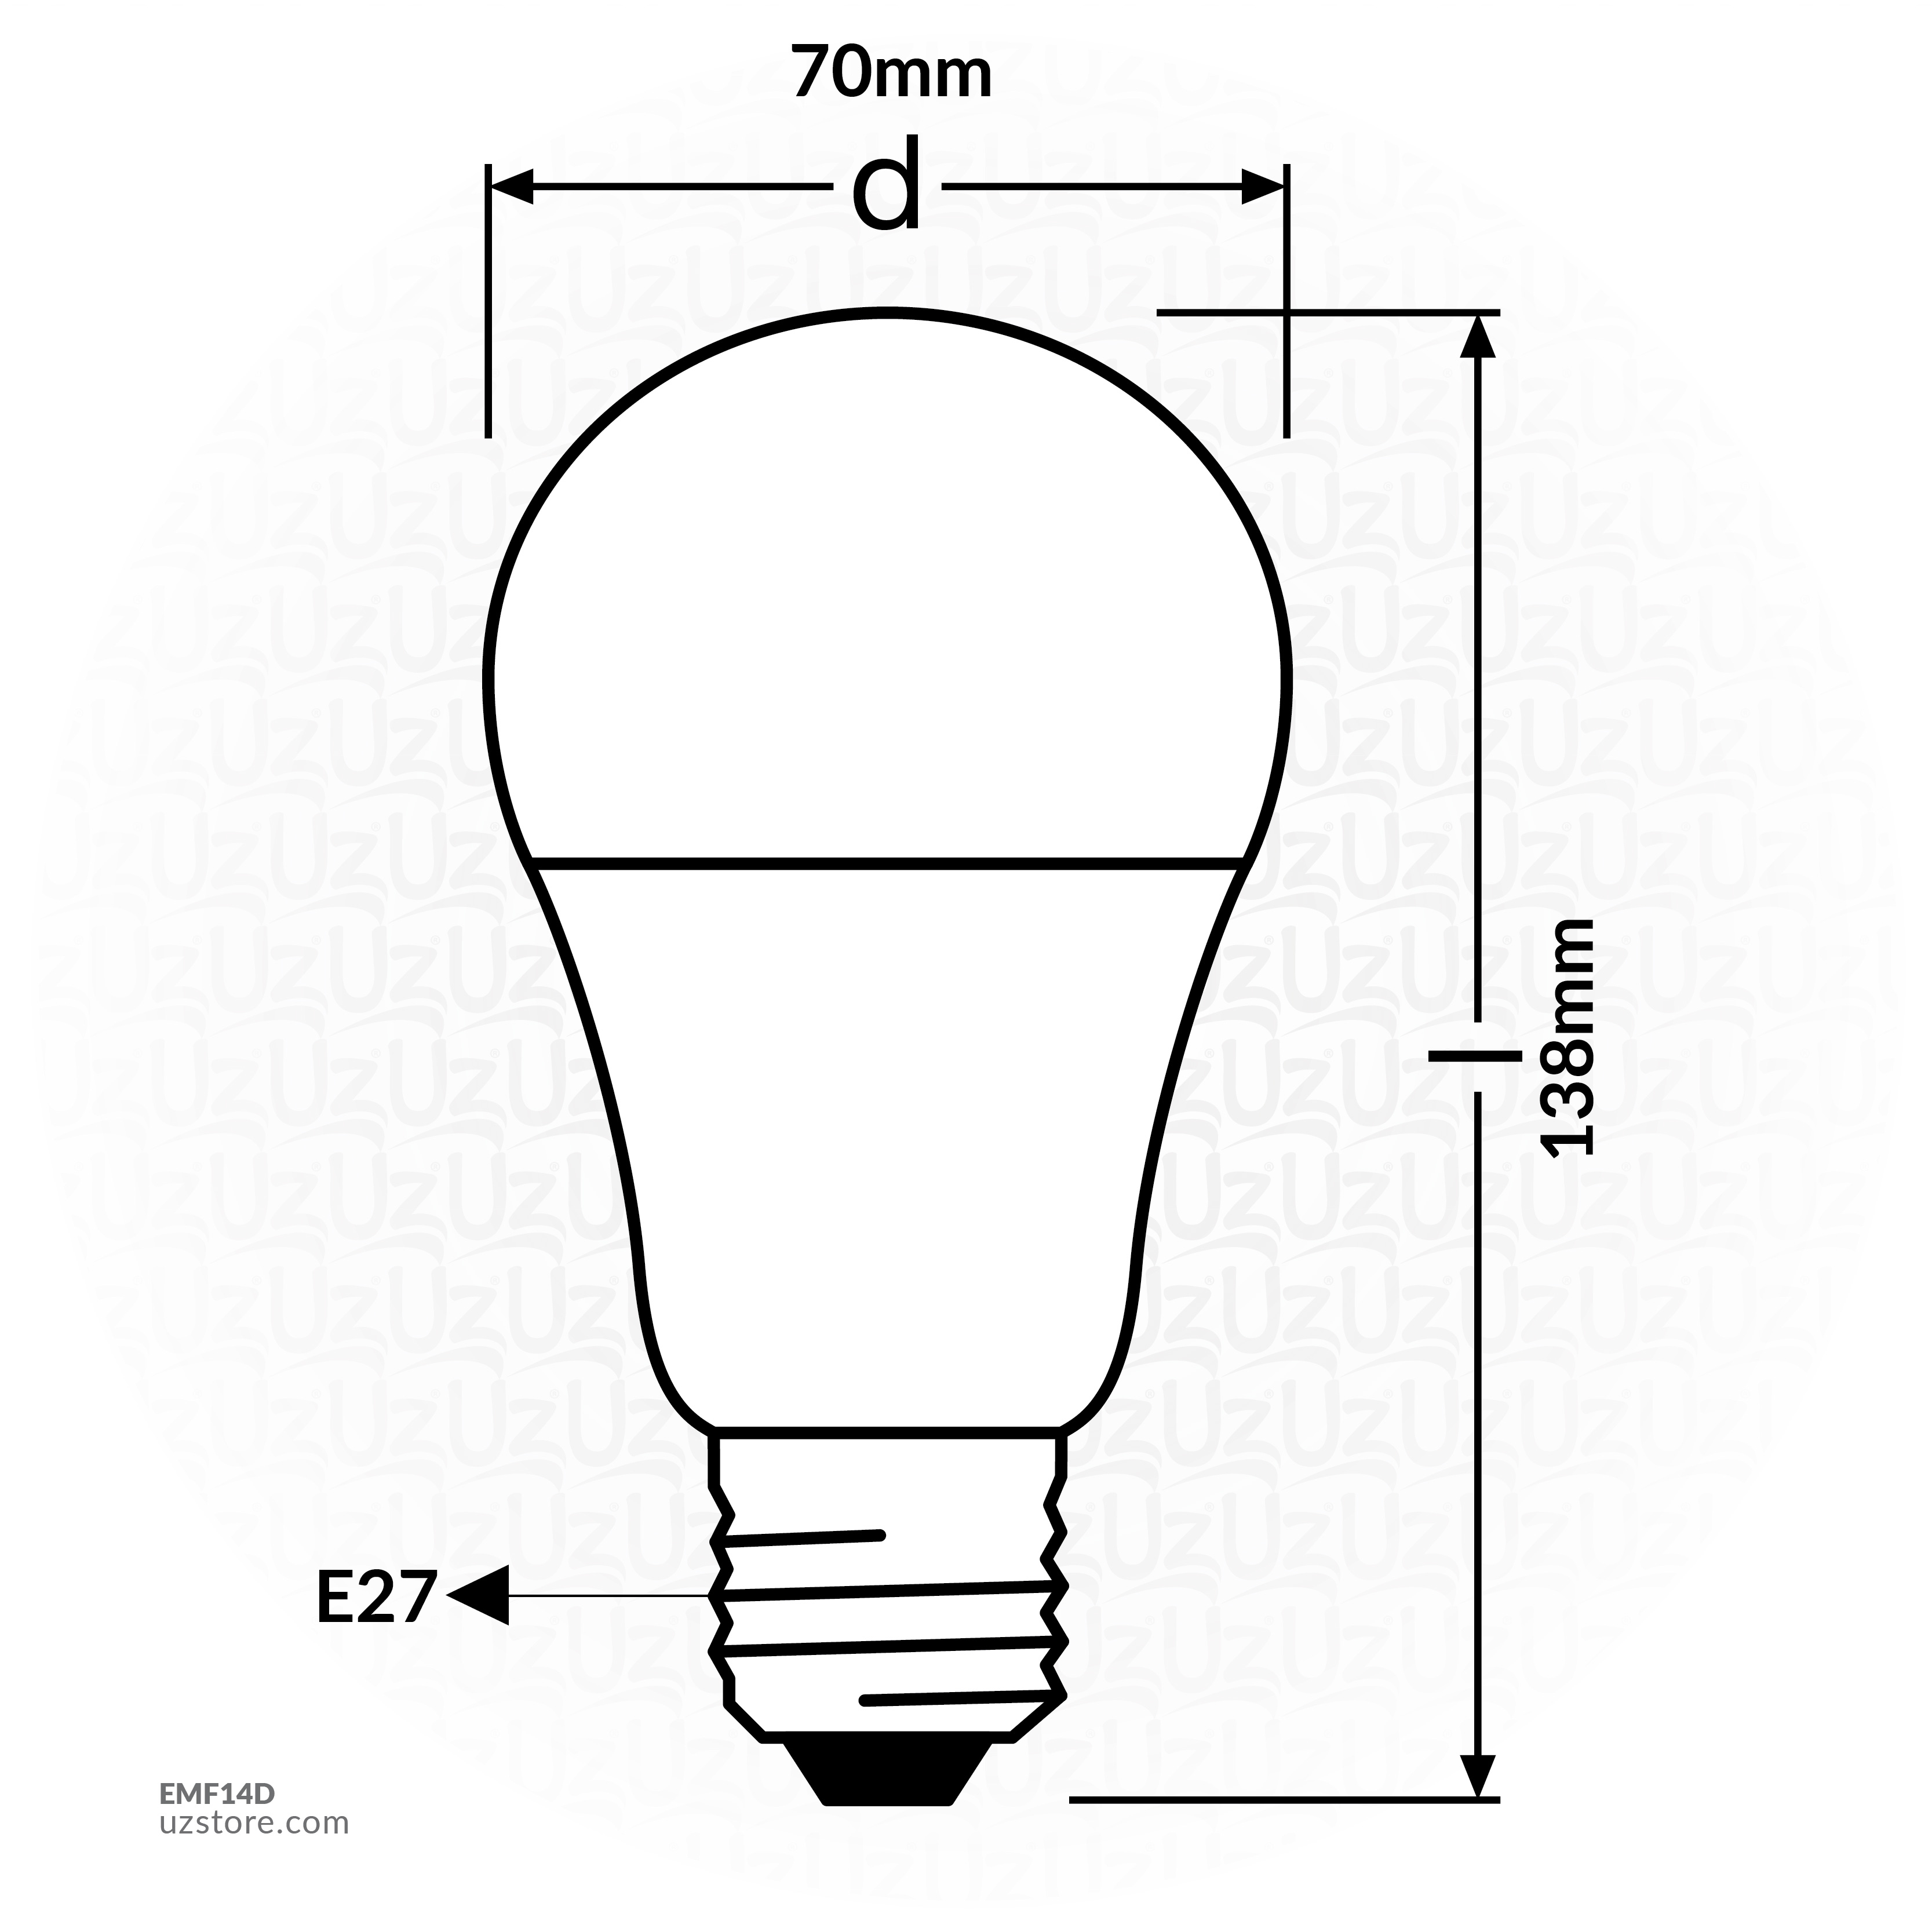 Osram Lamb FIGHTER SERIES 14W, E27, CLAS A LED GLS, 3000K, NON- DIMMABLE